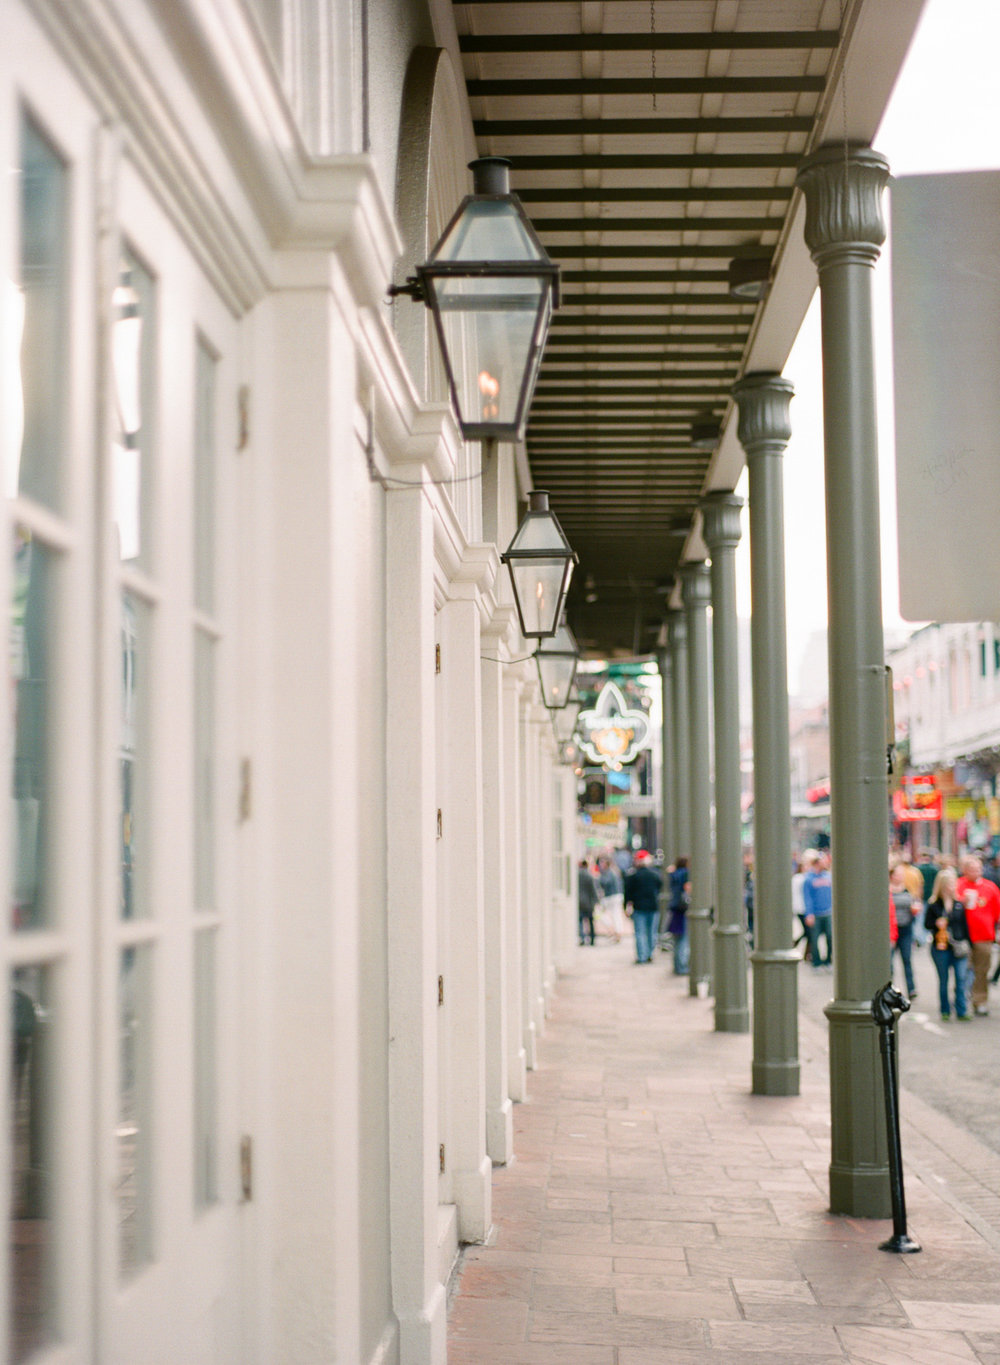 NEWORLEANS2013_©kristinmyoung_SquareLORes-19.jpg